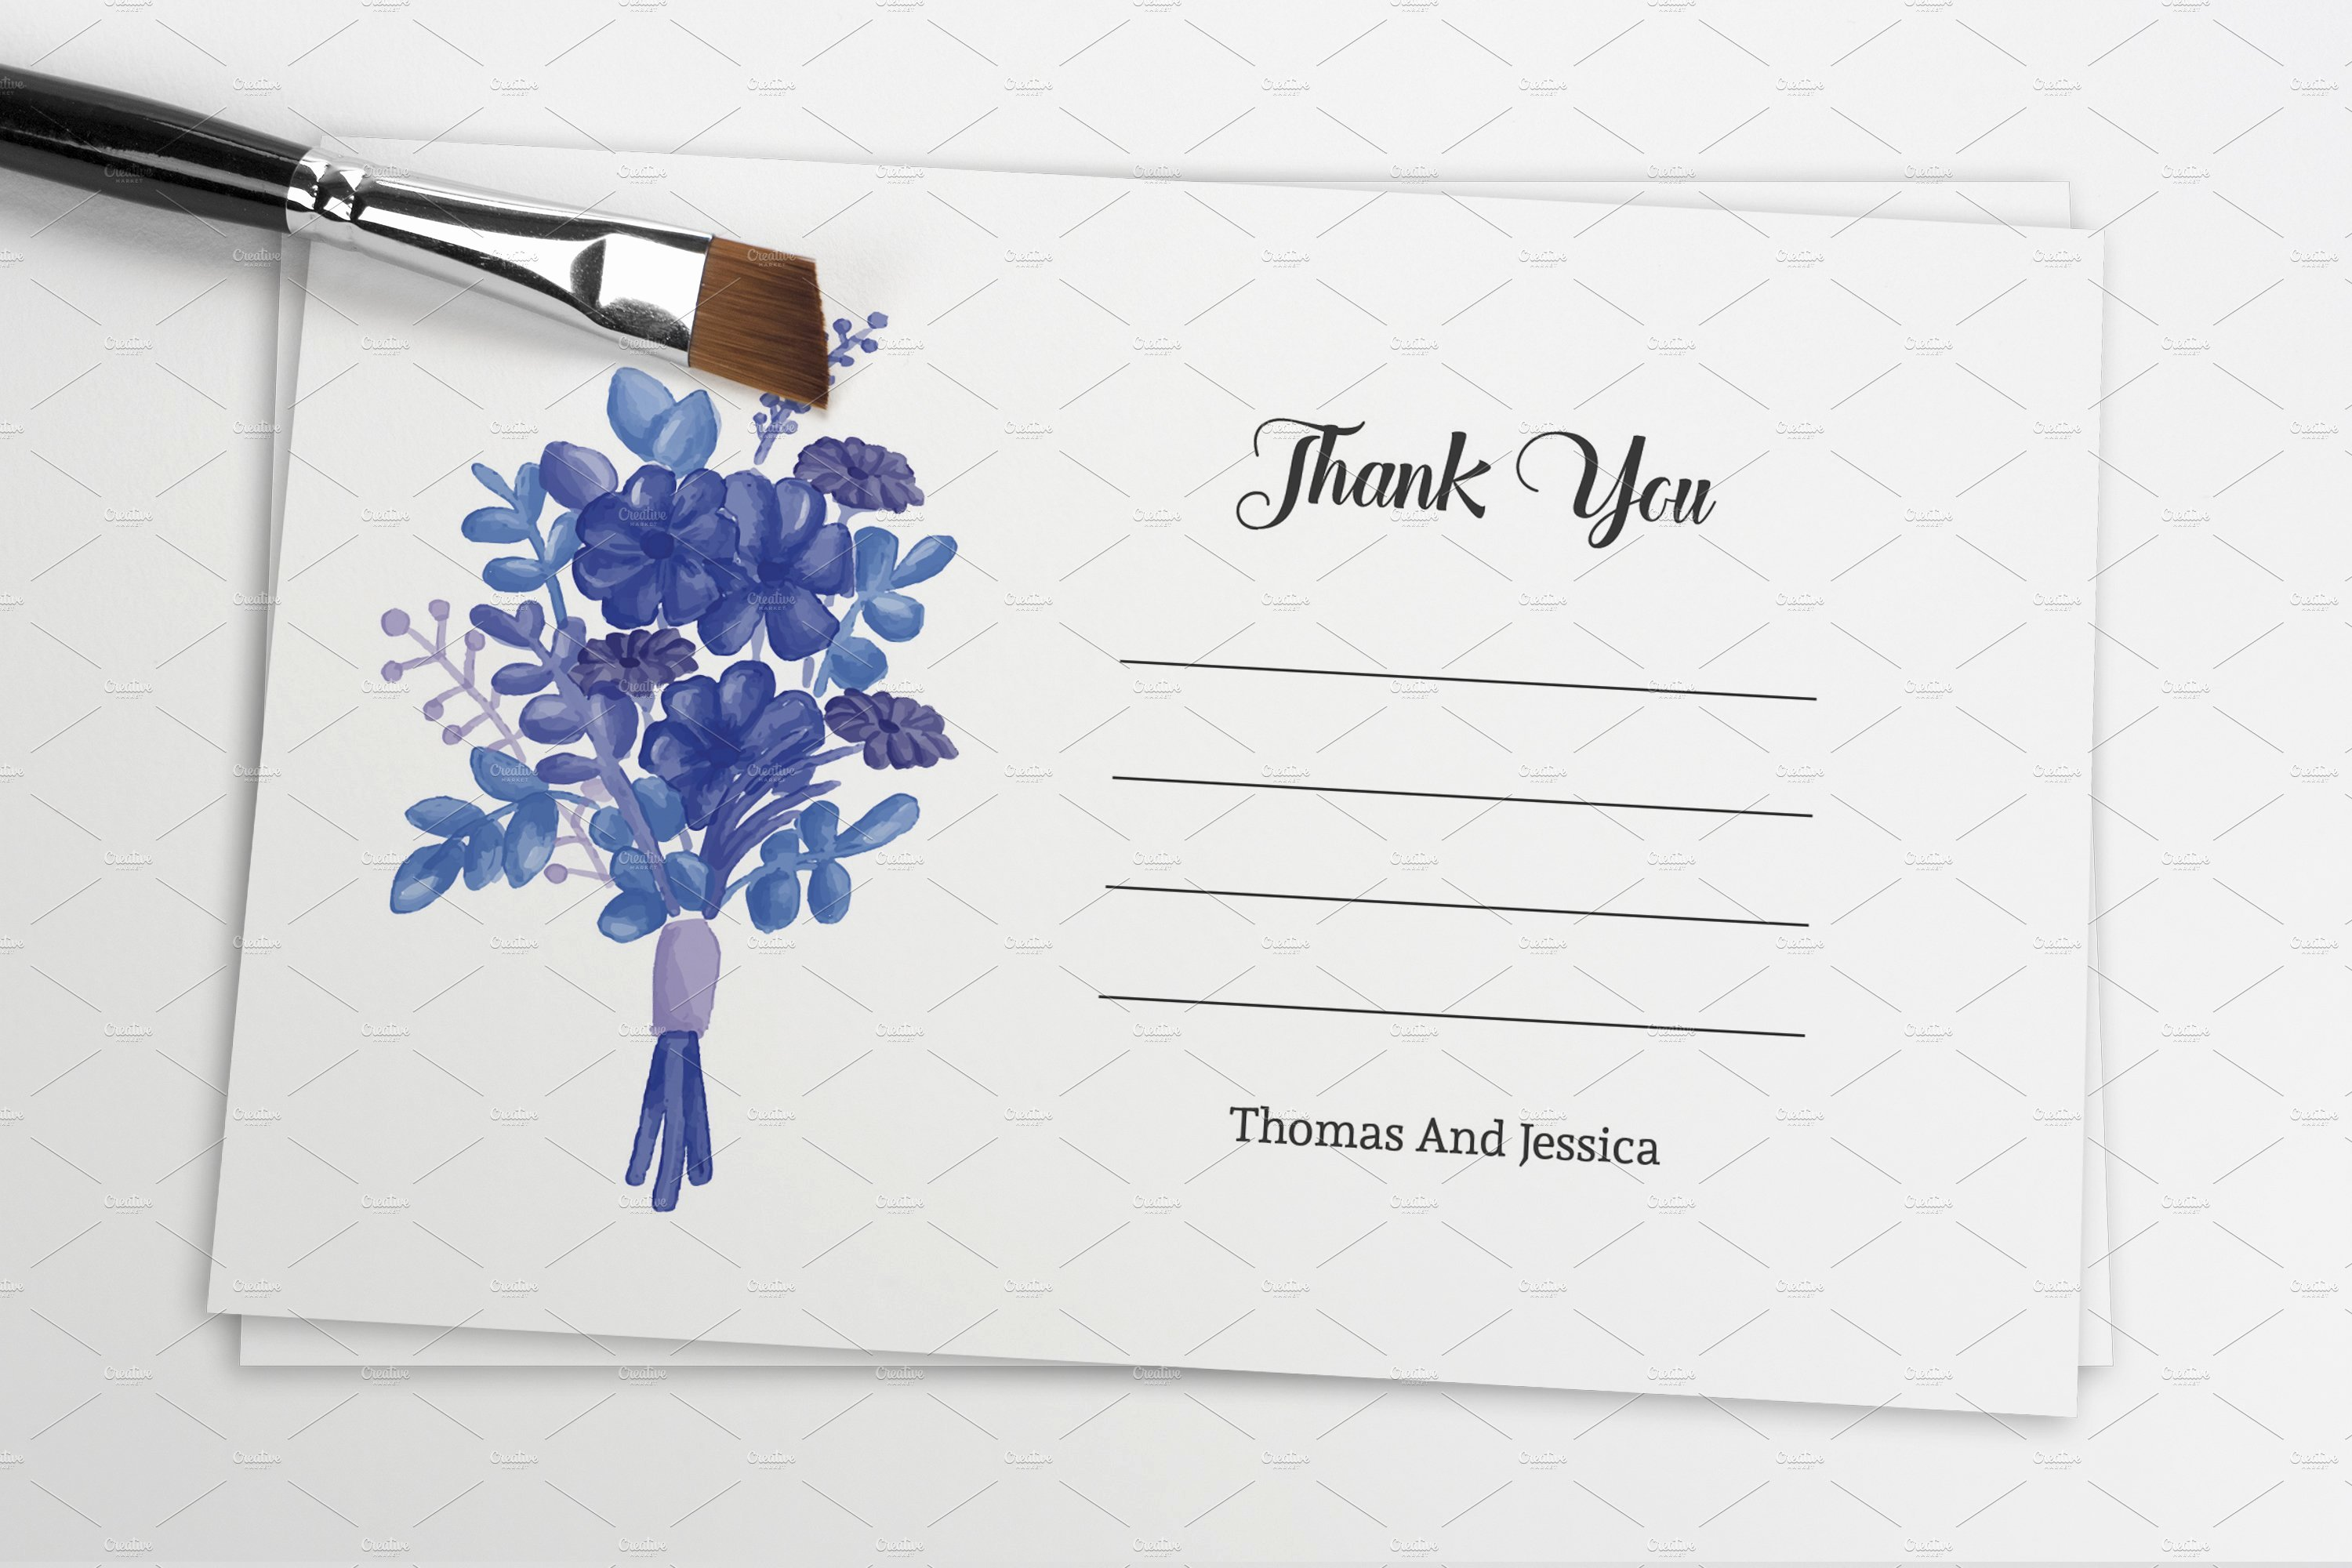 Wedding Thank You Note Template Best Of Wedding Thank You Card Template Wedding Templates